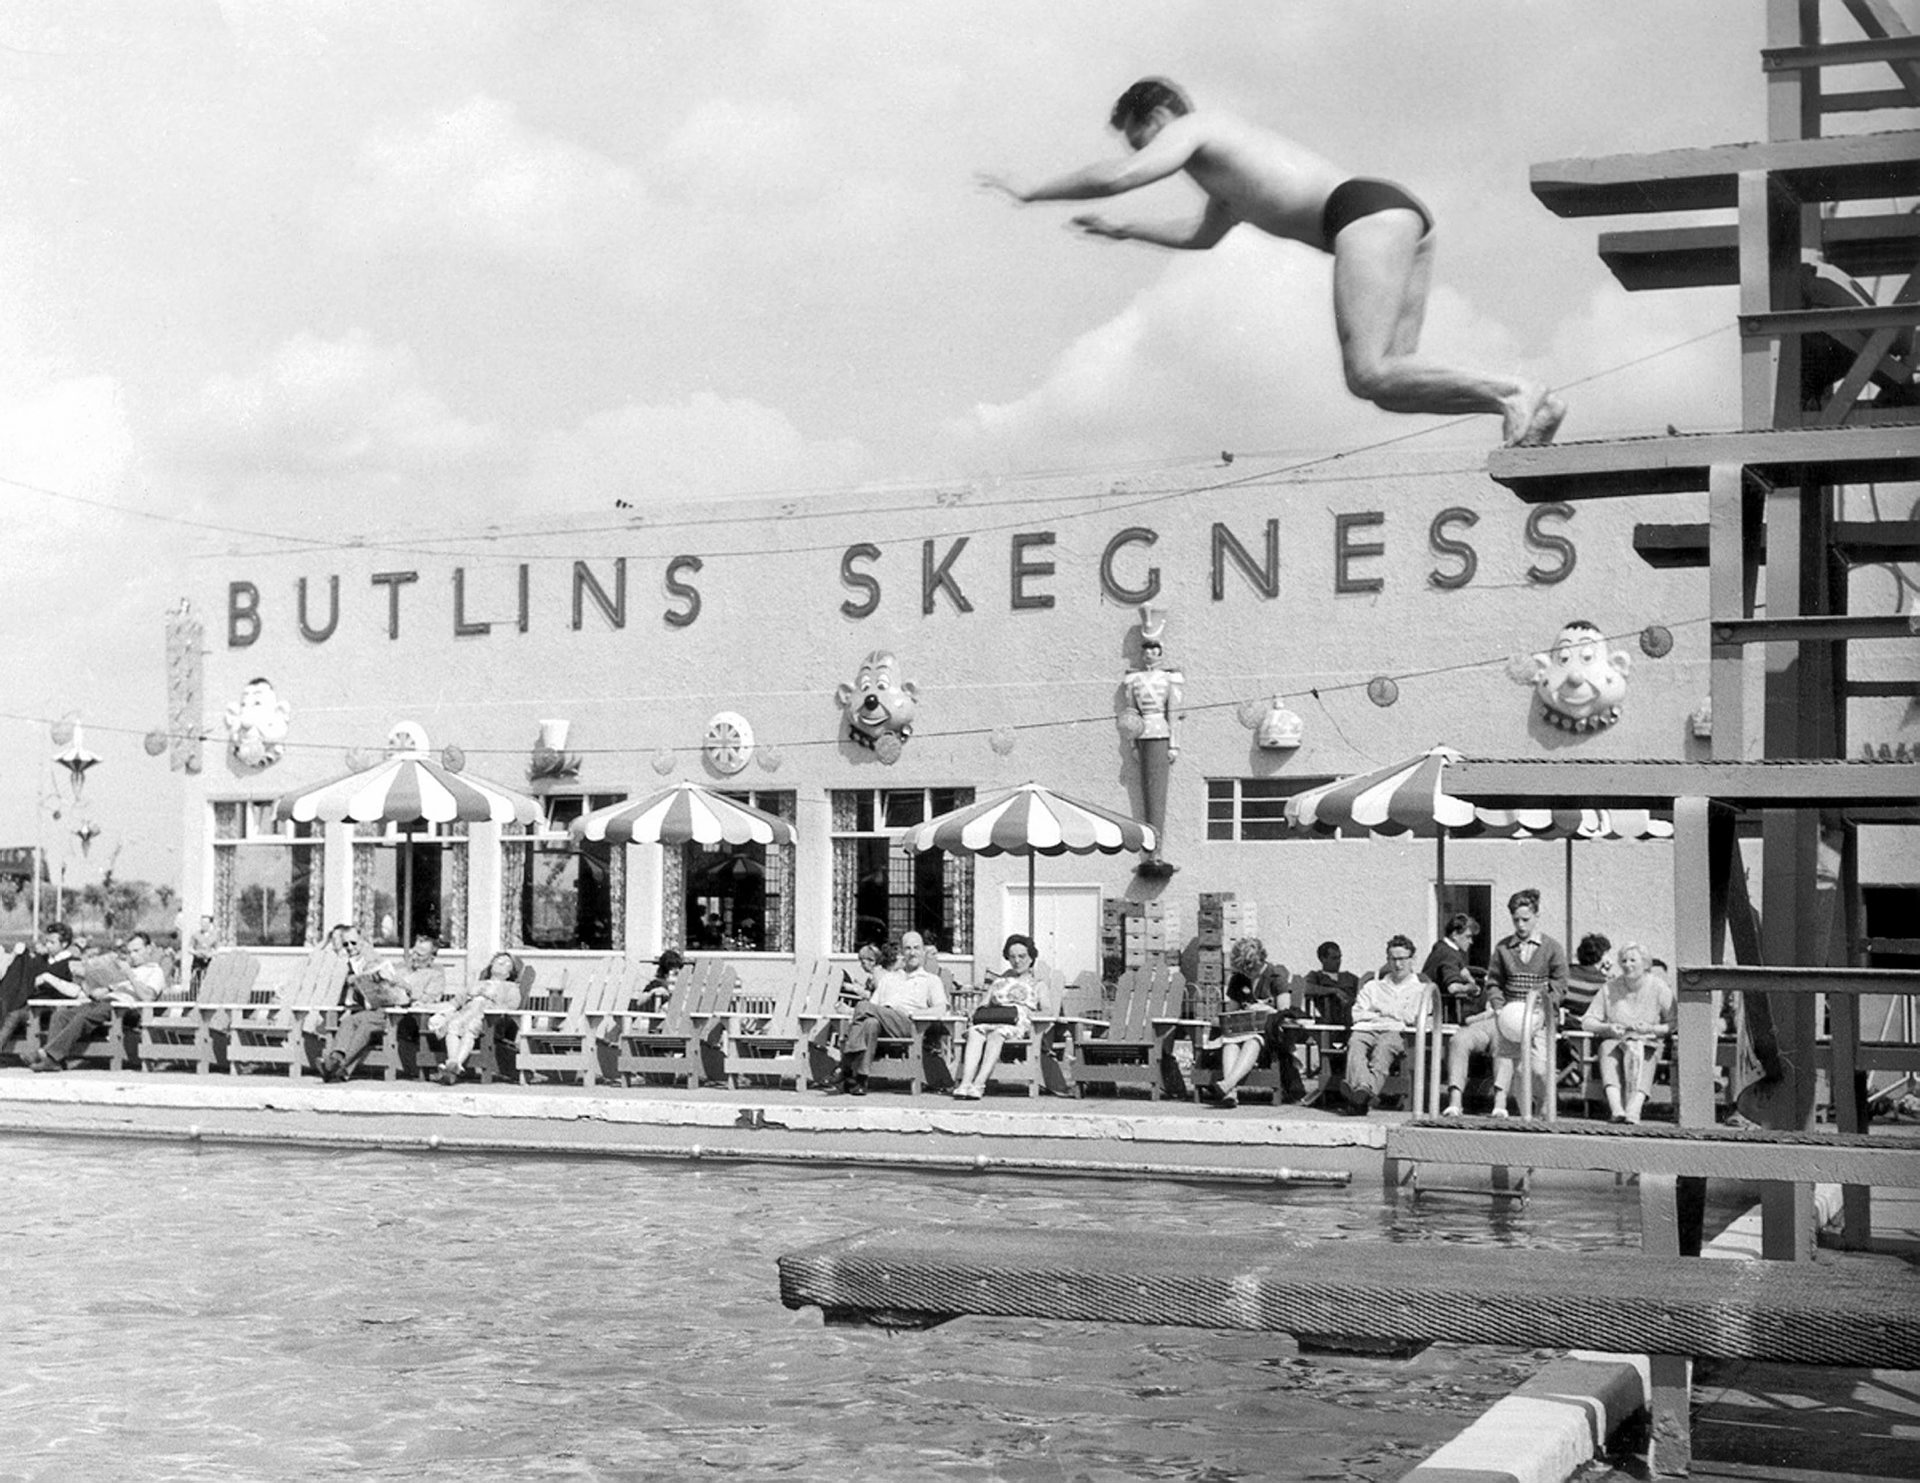 Butlins in Skegness 1950s